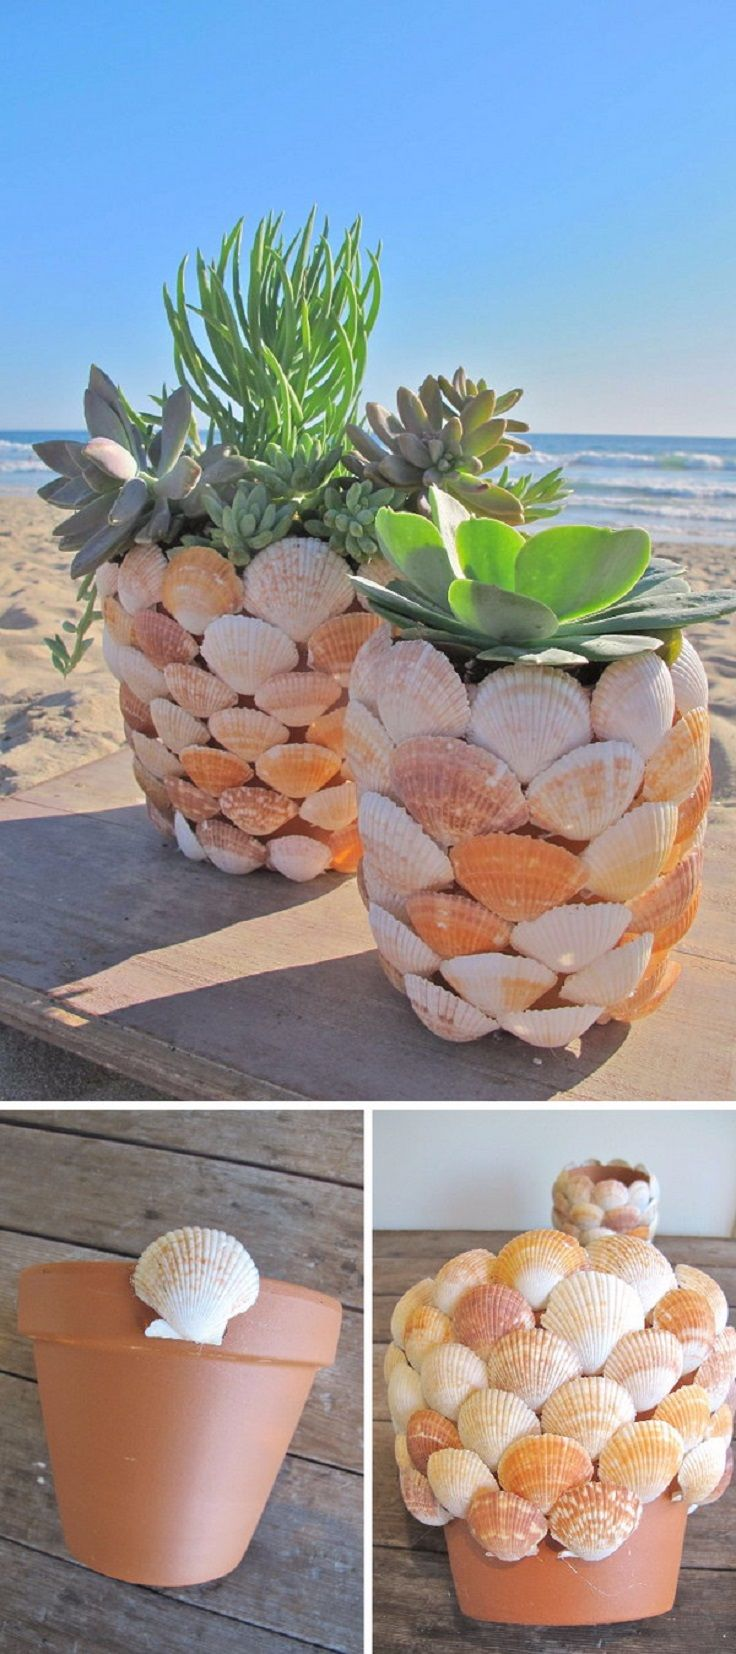 DIY Seashell Succulent Planter - 12 Summery DIY Projects To Dive Into the New Season In A Creative Way